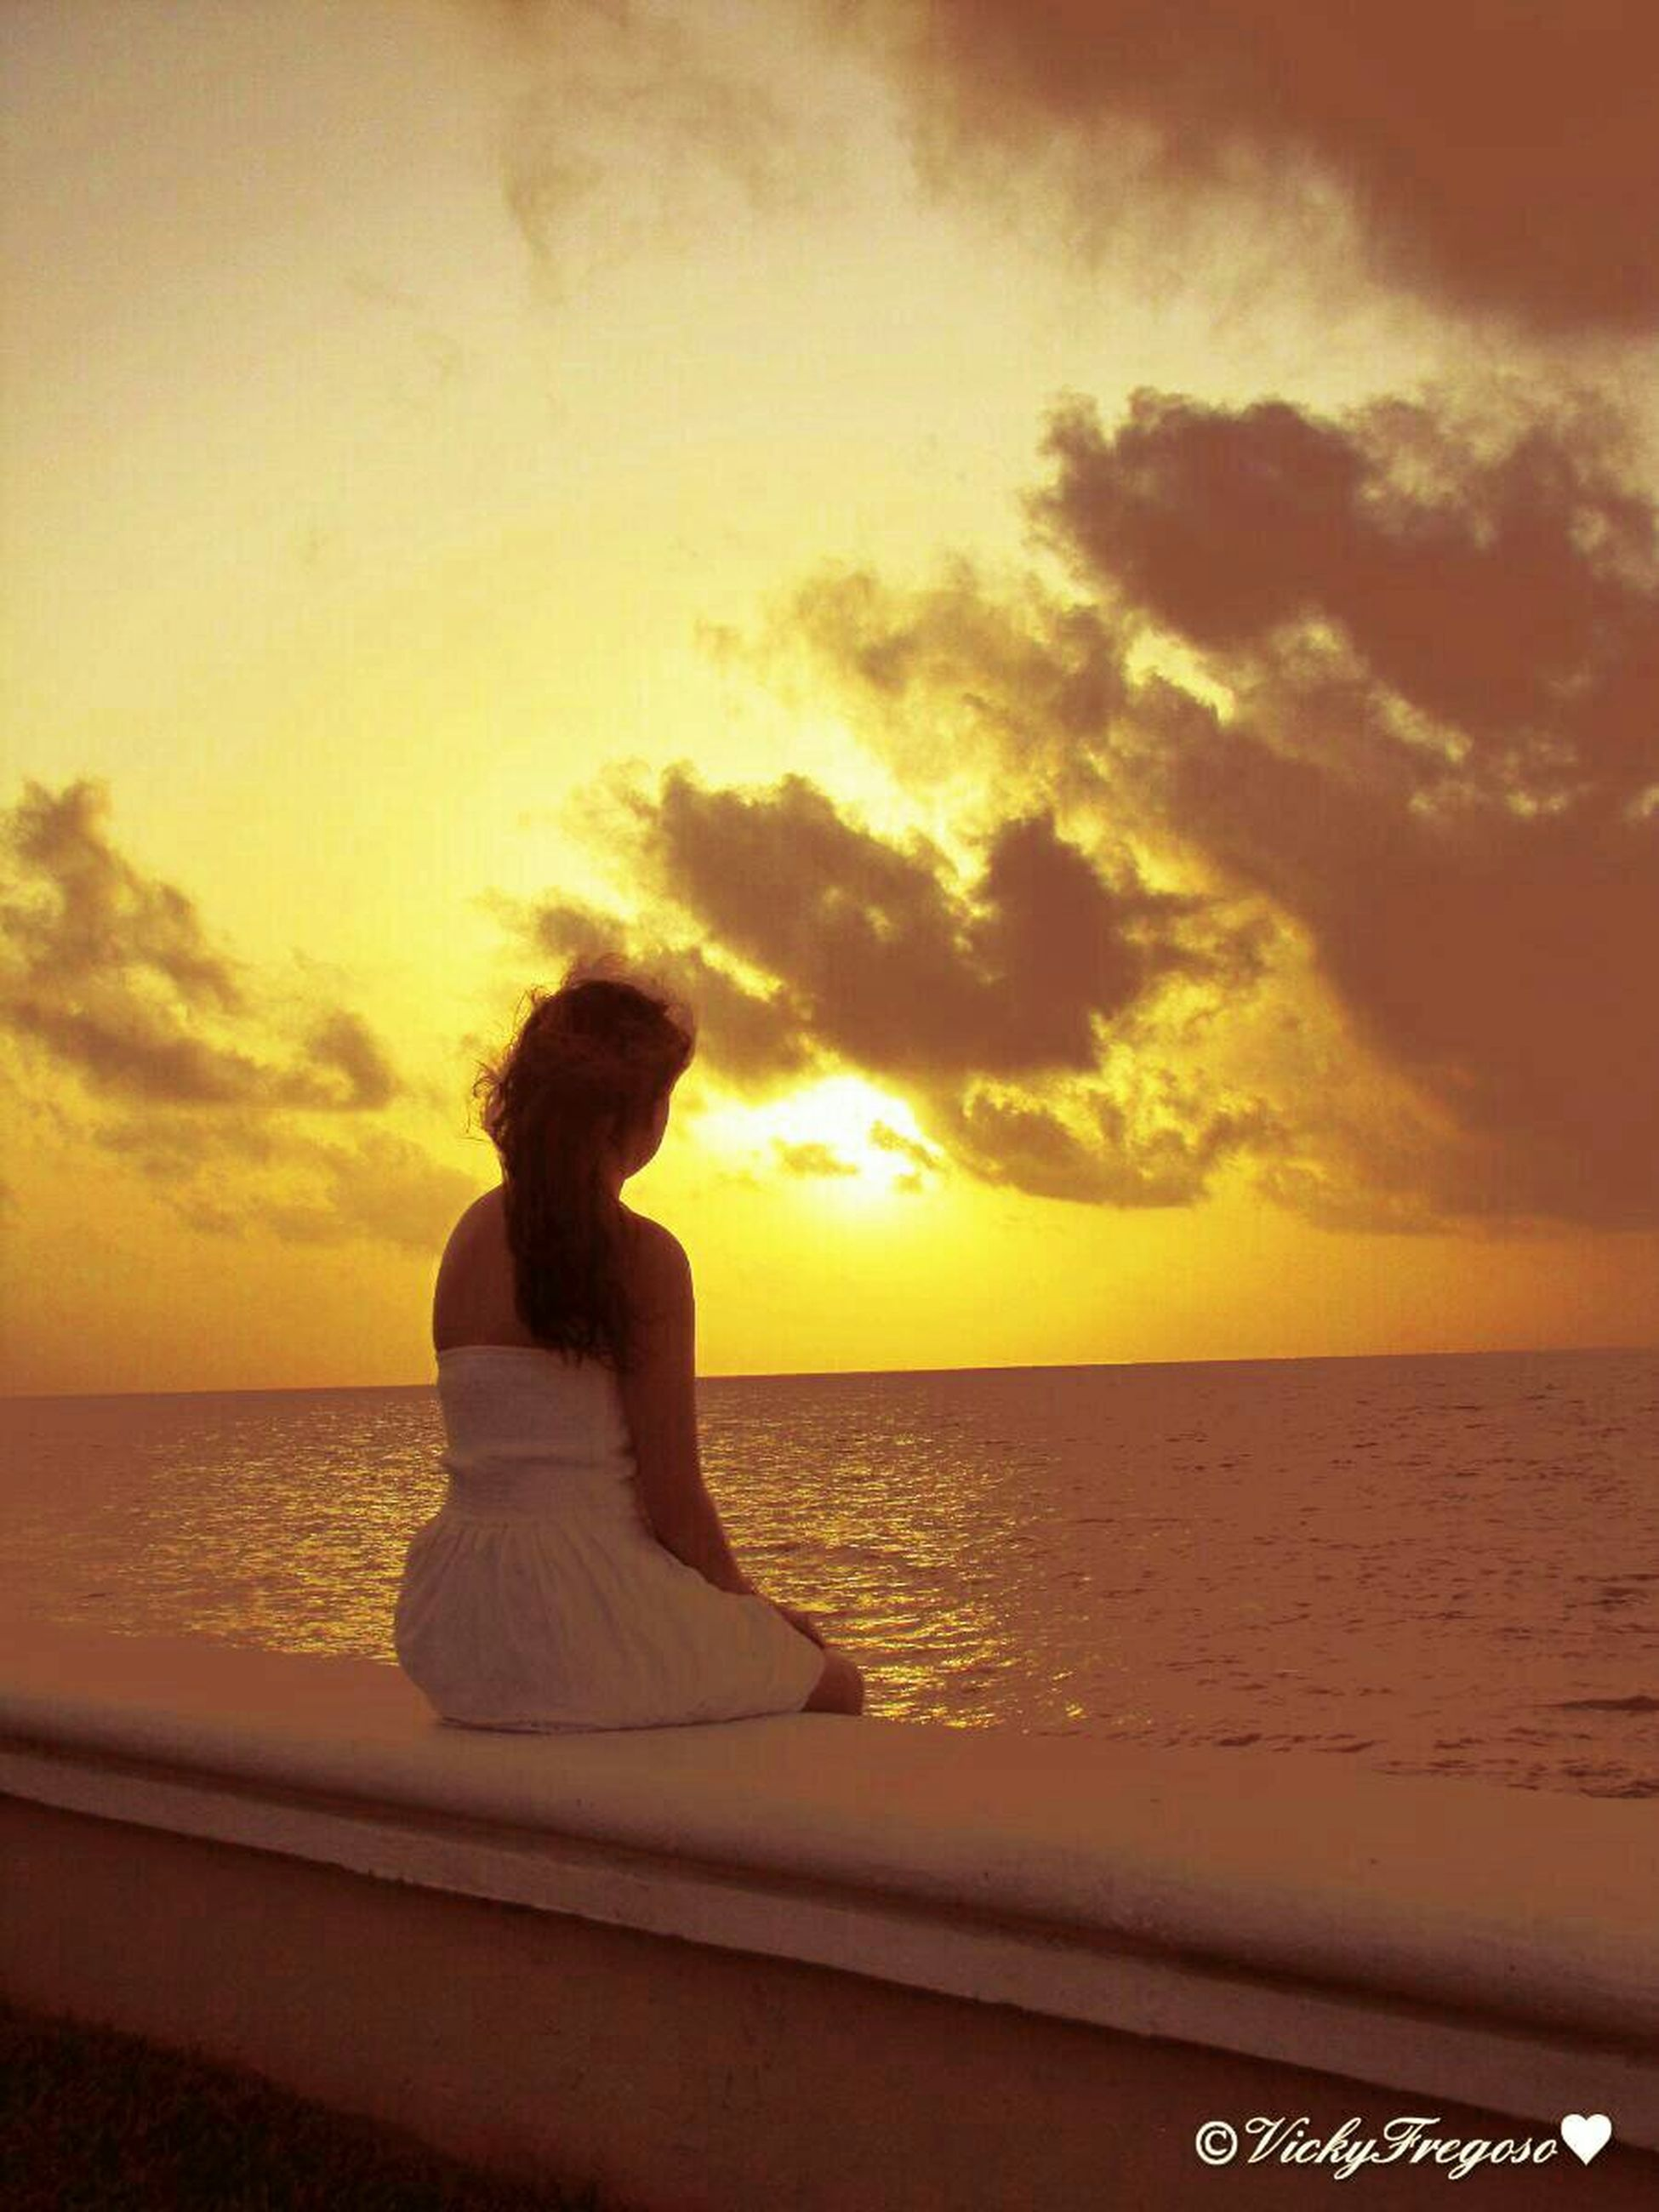 sunset, sea, water, horizon over water, sky, orange color, scenics, silhouette, beauty in nature, tranquil scene, tranquility, beach, idyllic, nature, cloud - sky, shore, rock - object, sitting